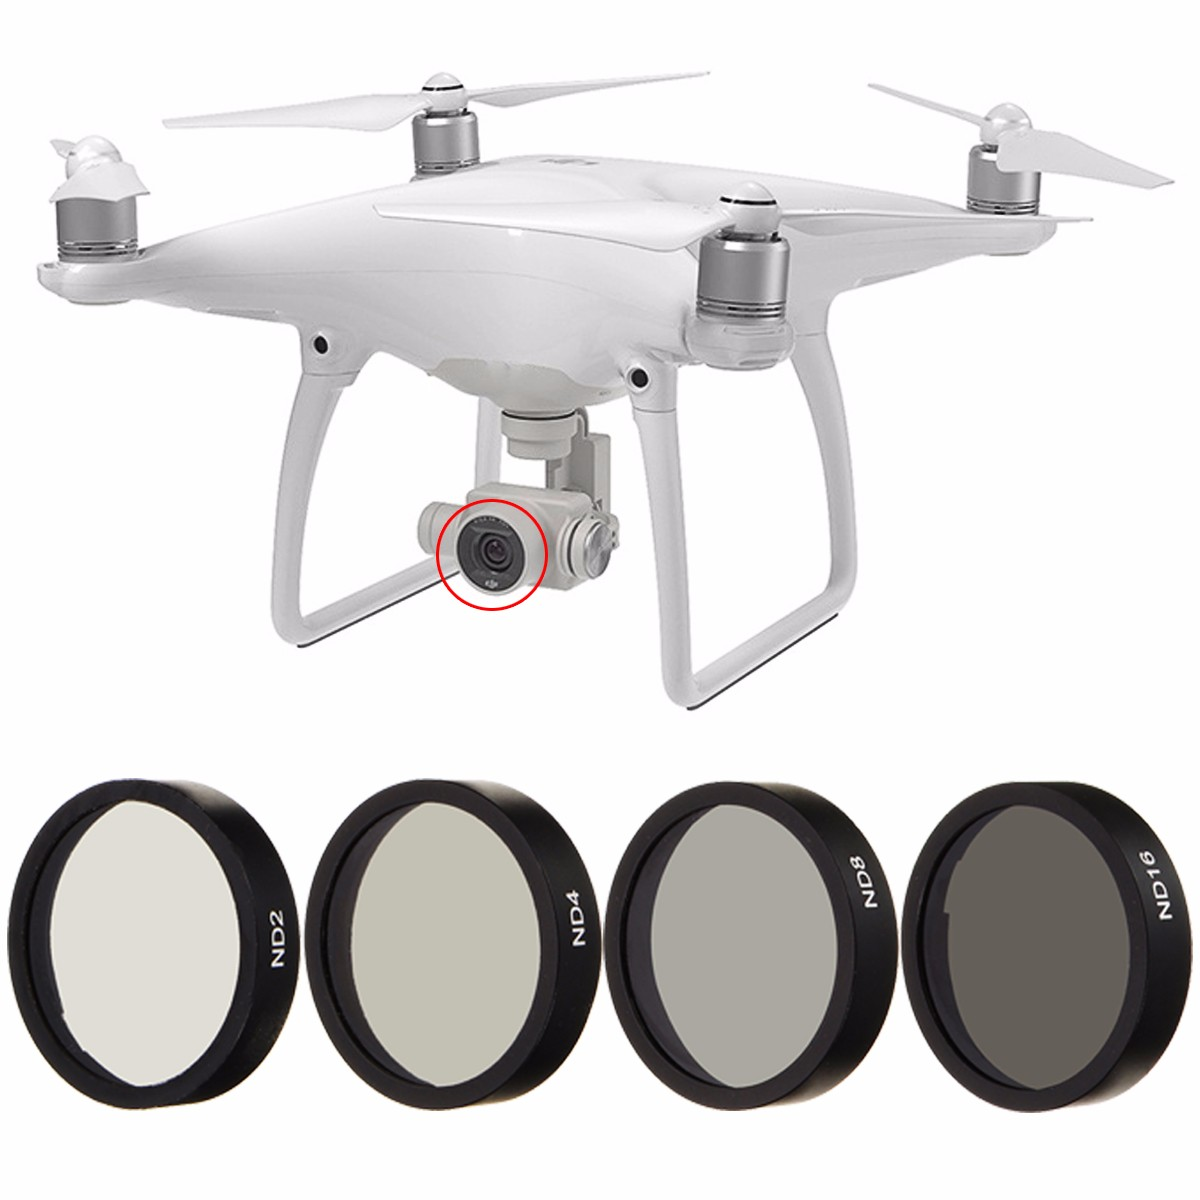 New 4pc ND2 ND4 ND8 ND16 Len Filter for DJI Phantom 3 4 Professional Advanced Camera Camera Drone Lens Set Black Frame